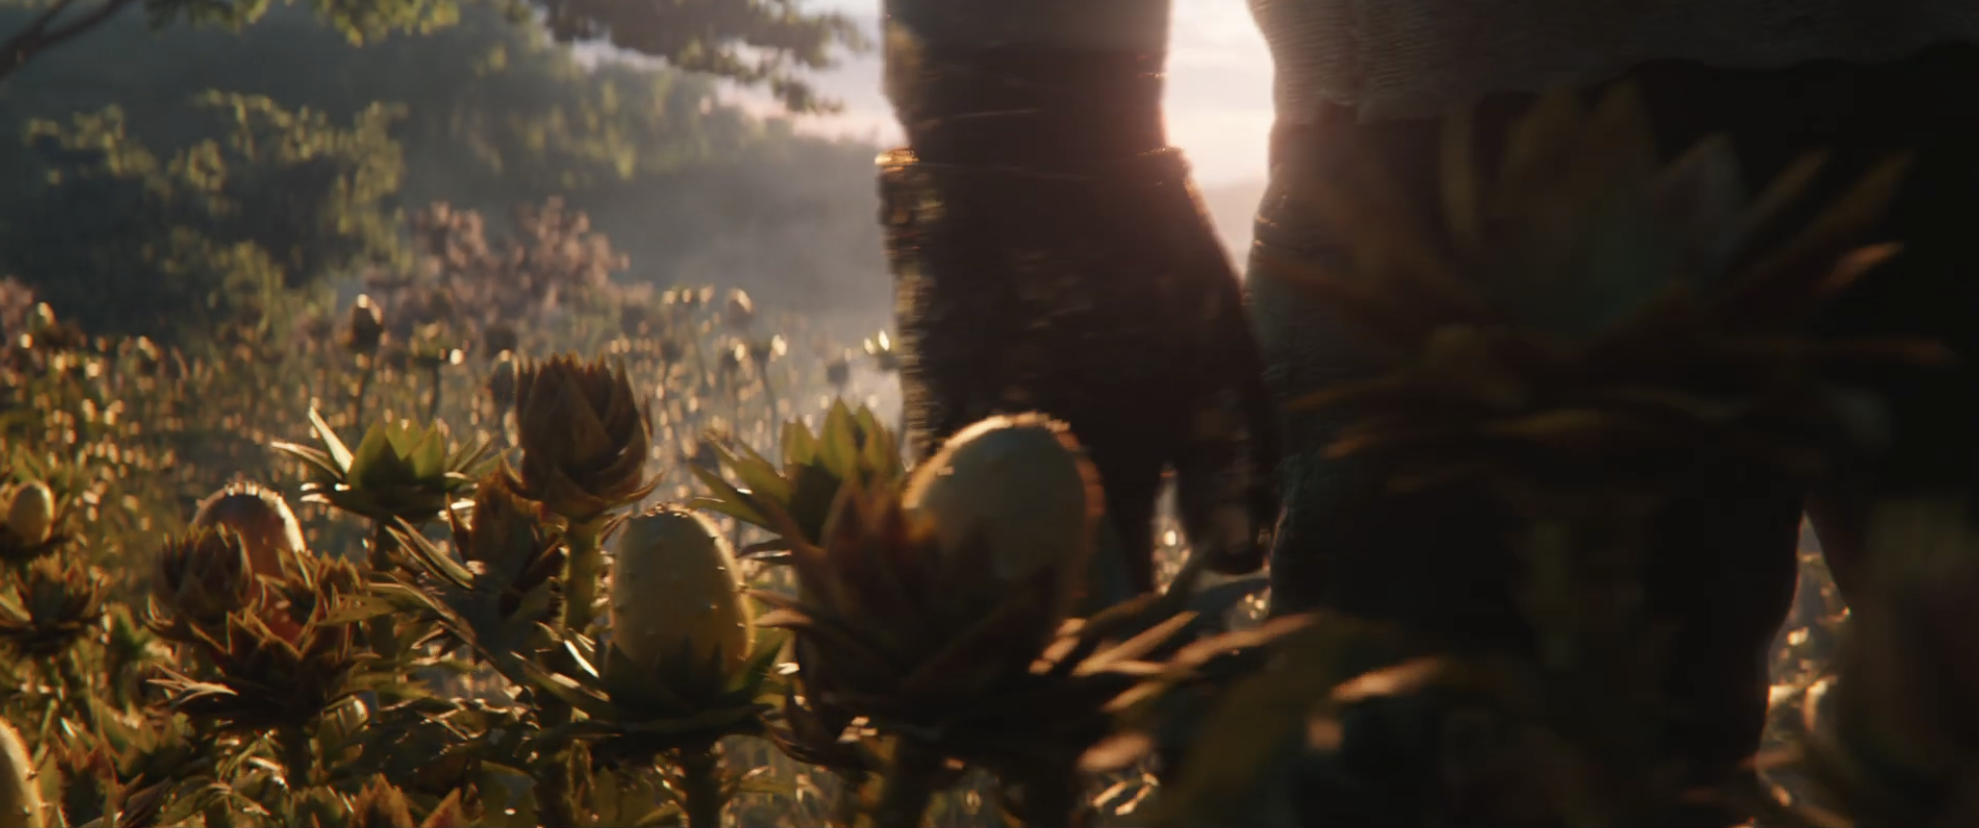 Avengers Endgame Trailer Vegetation